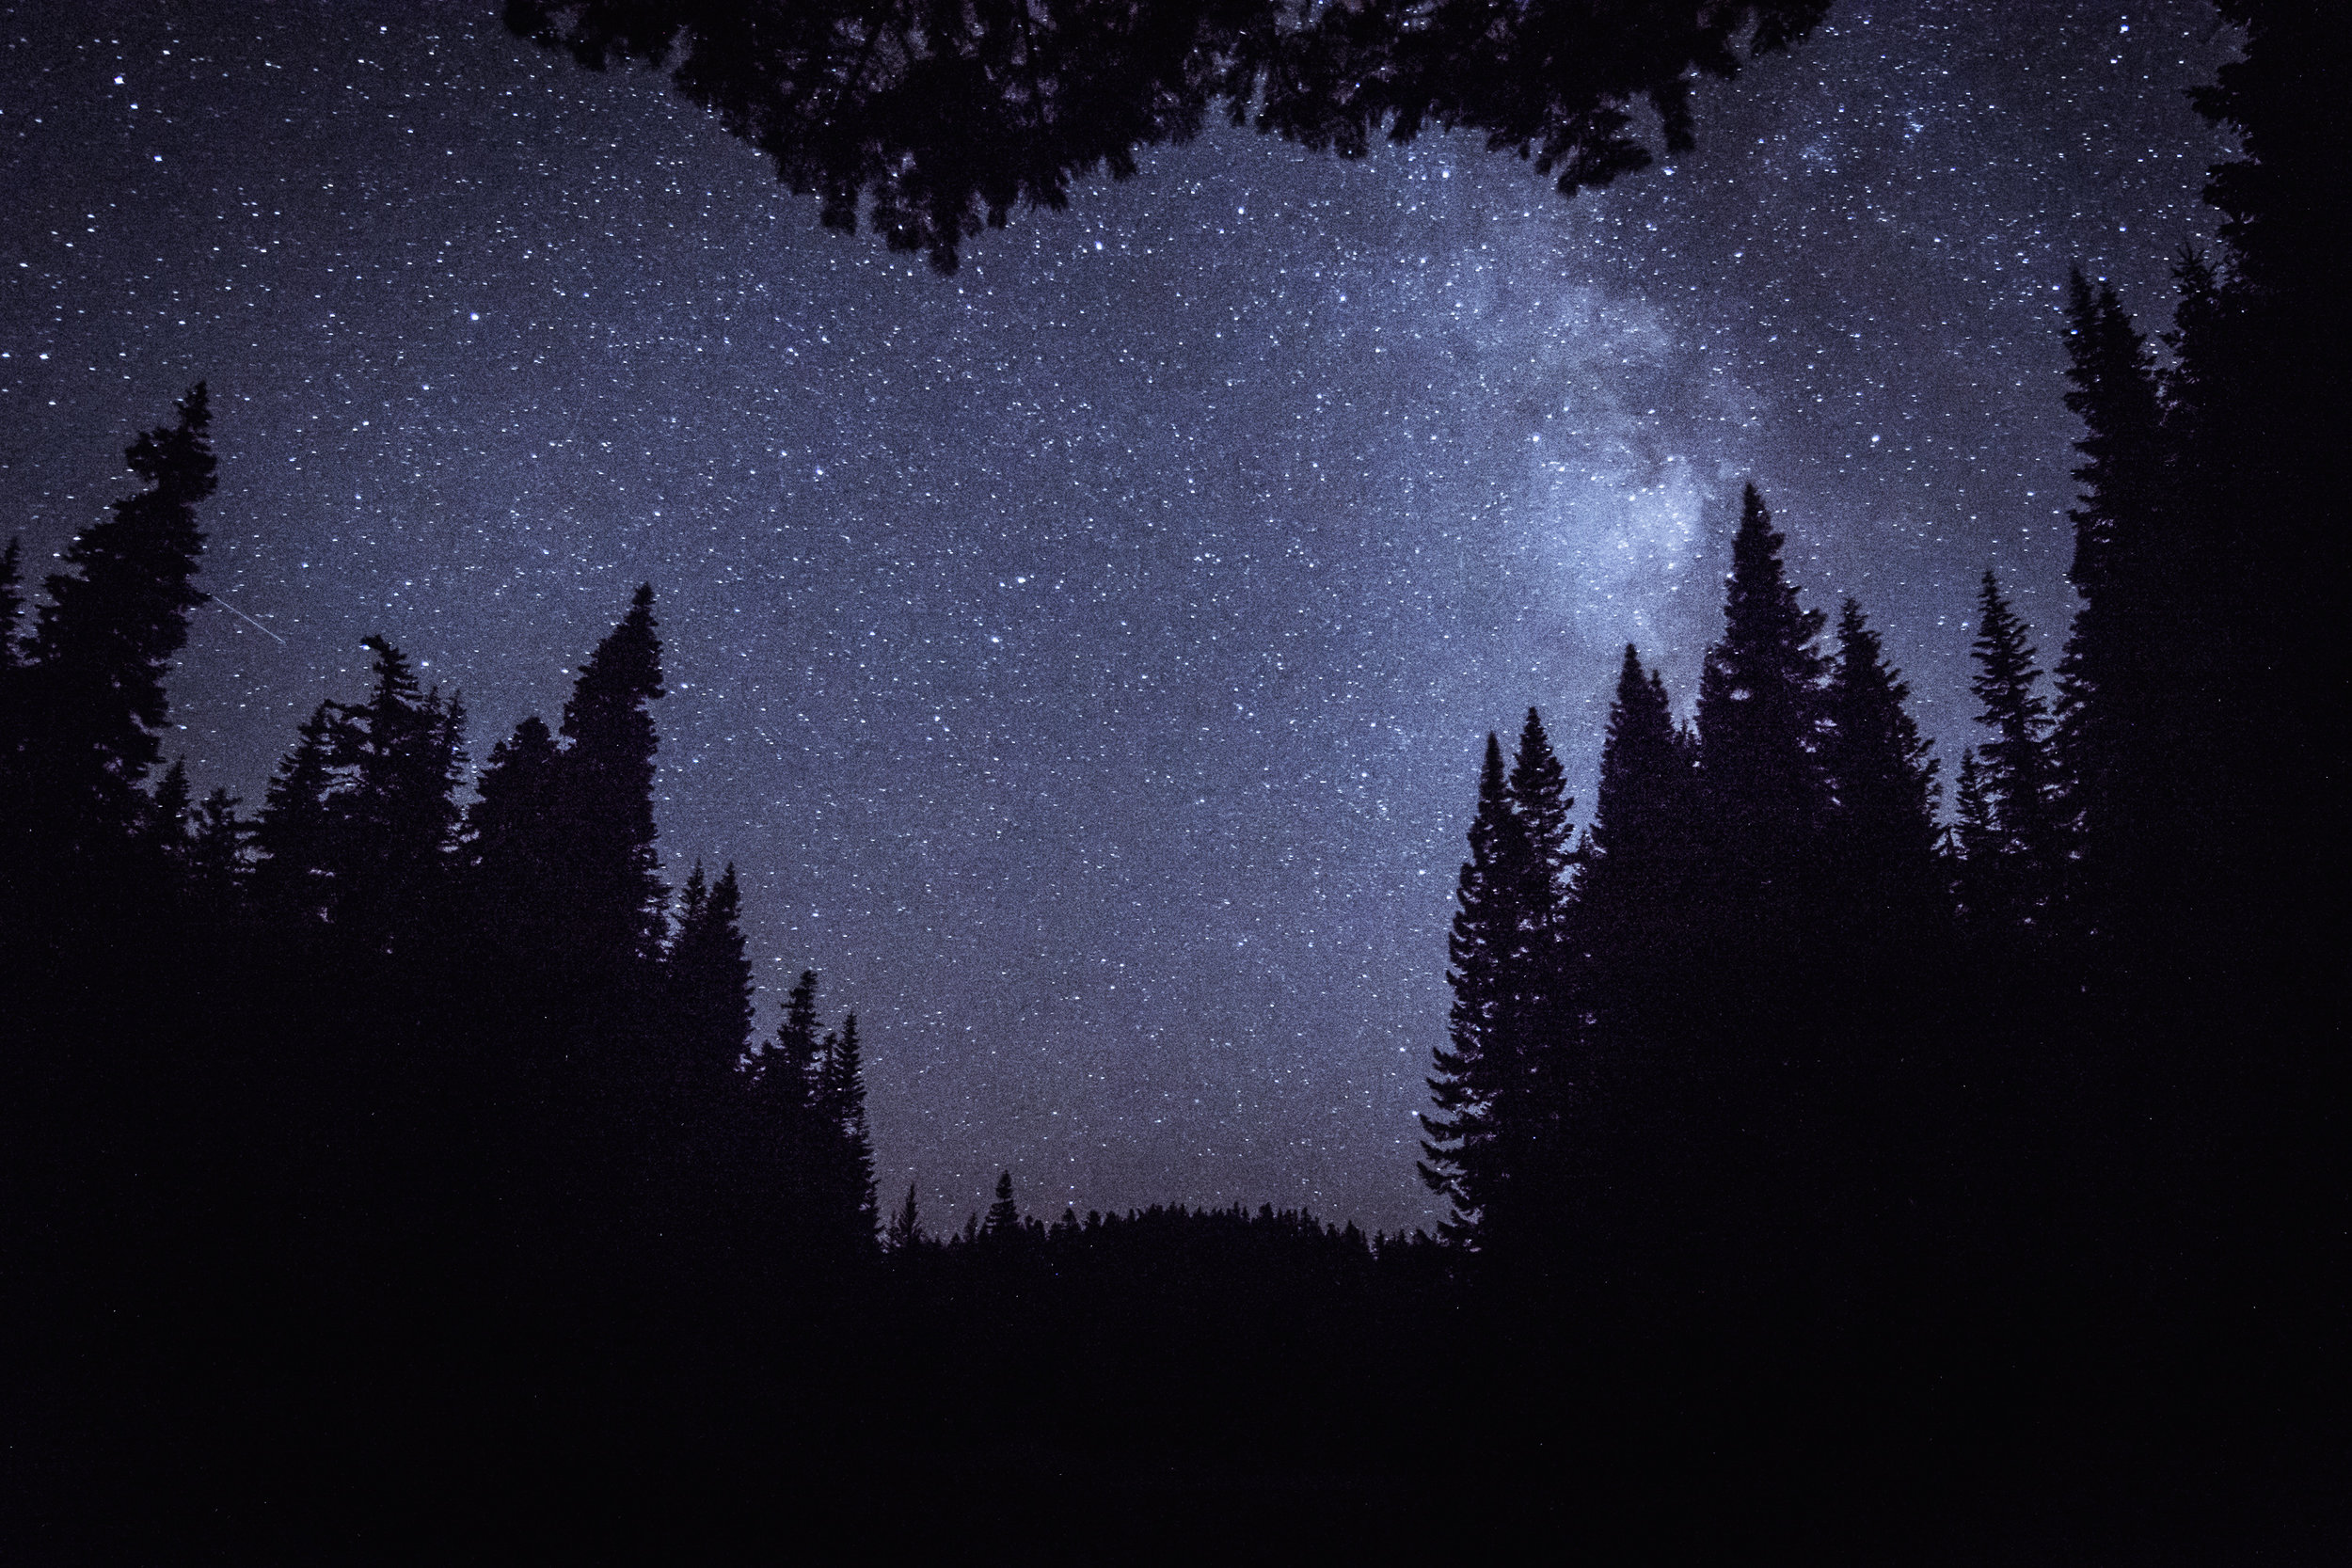 Mount Hood National Forest night sky © Gabriel Amadeus